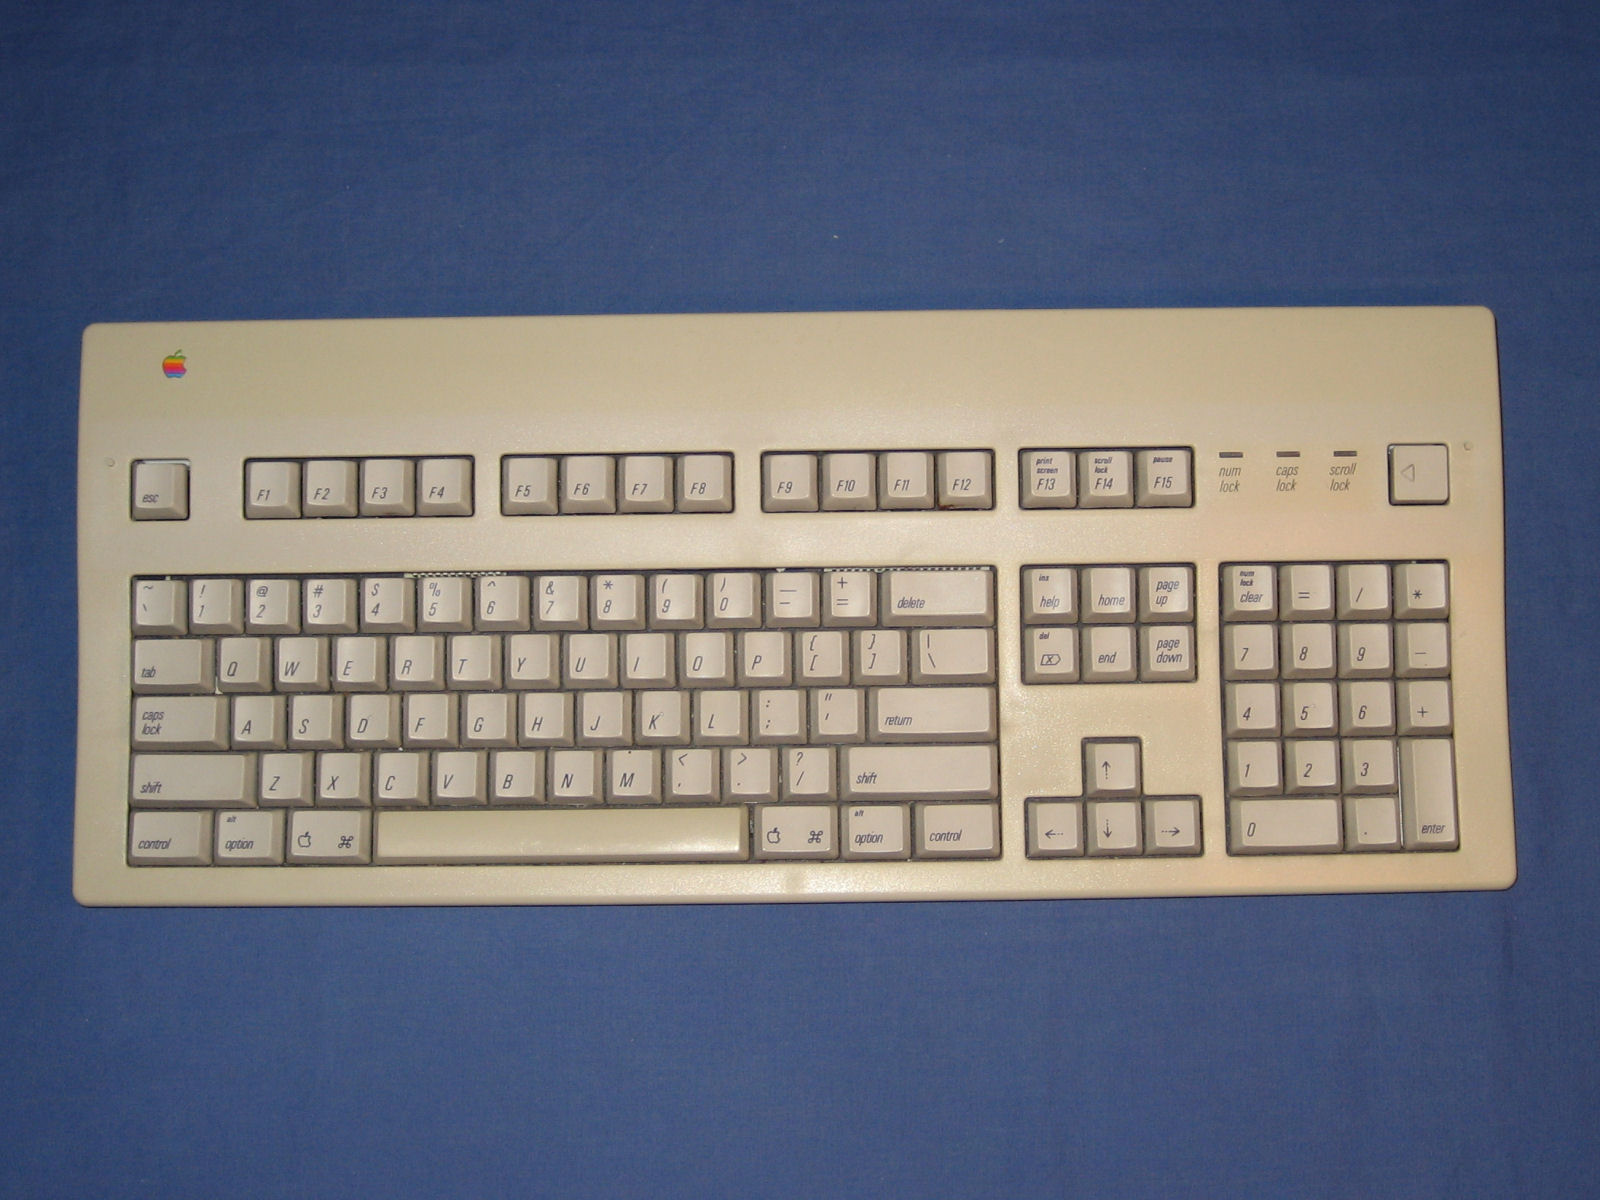 Apple extended keyboard ii m3501